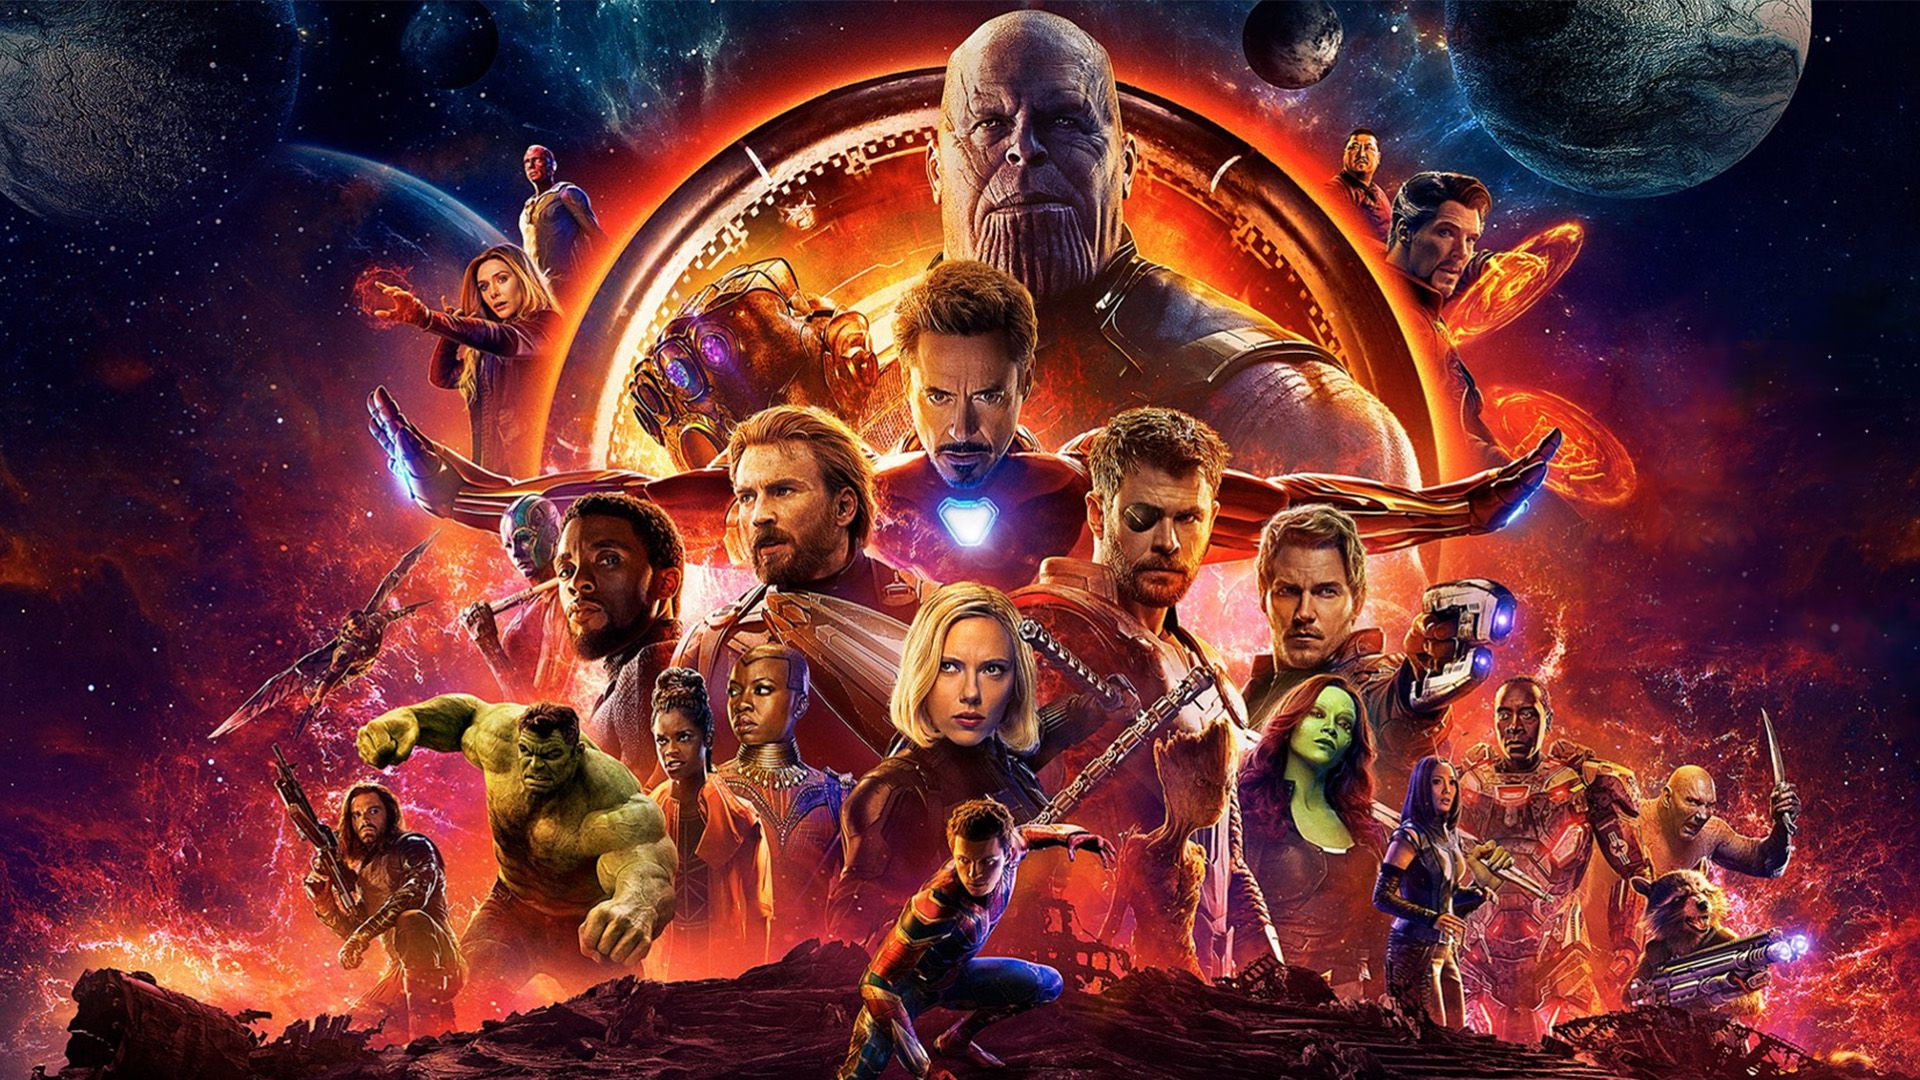 Avengers Endgame Laptop Wallpapers Top Free Avengers